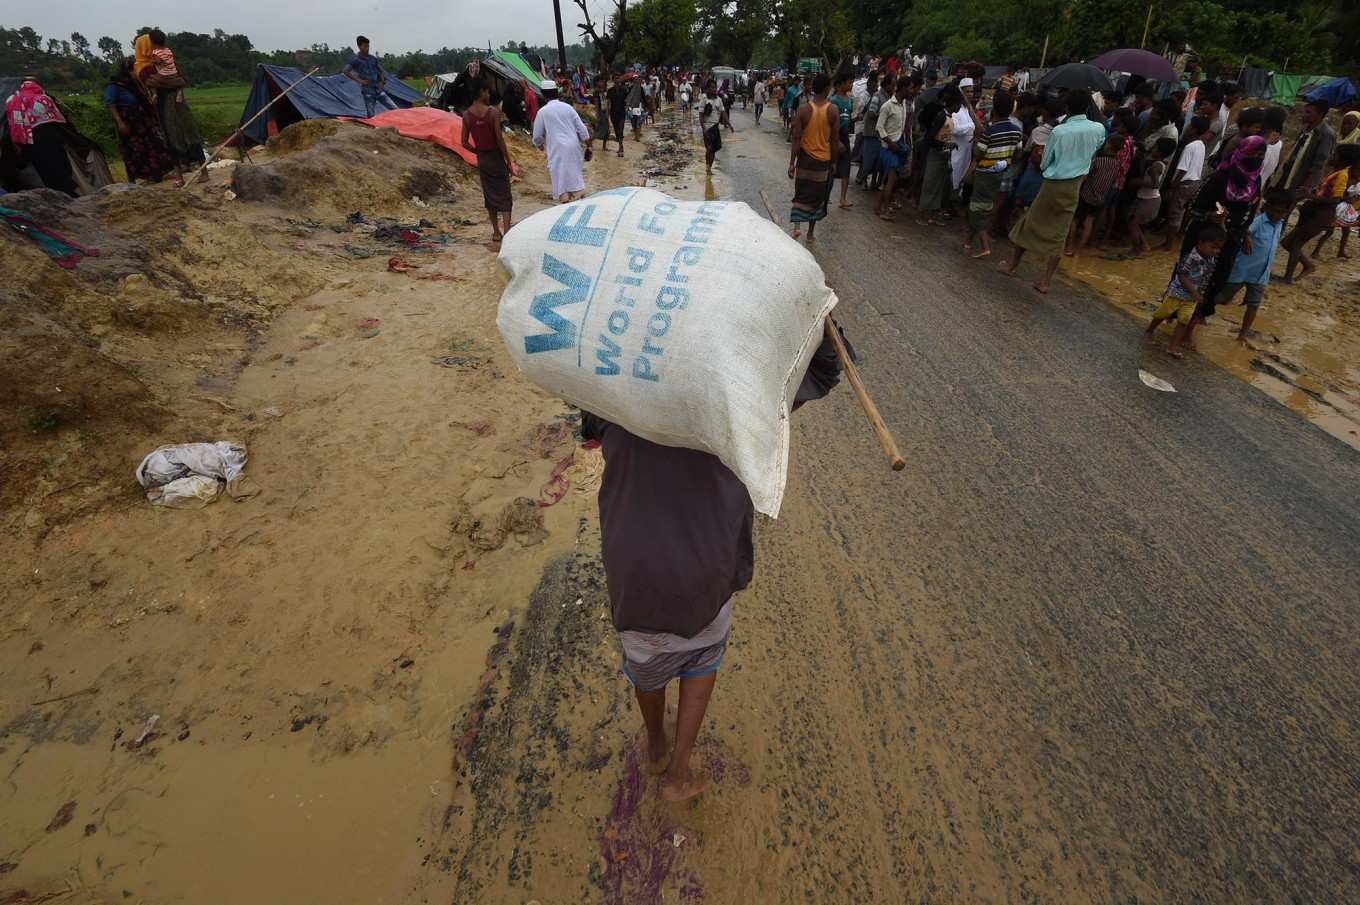 A Rohingya Muslim refugee carries a rice bag along a road near Balukhali refugee camp near the Bangladesh town of Gumdhum on September 17, 2017.